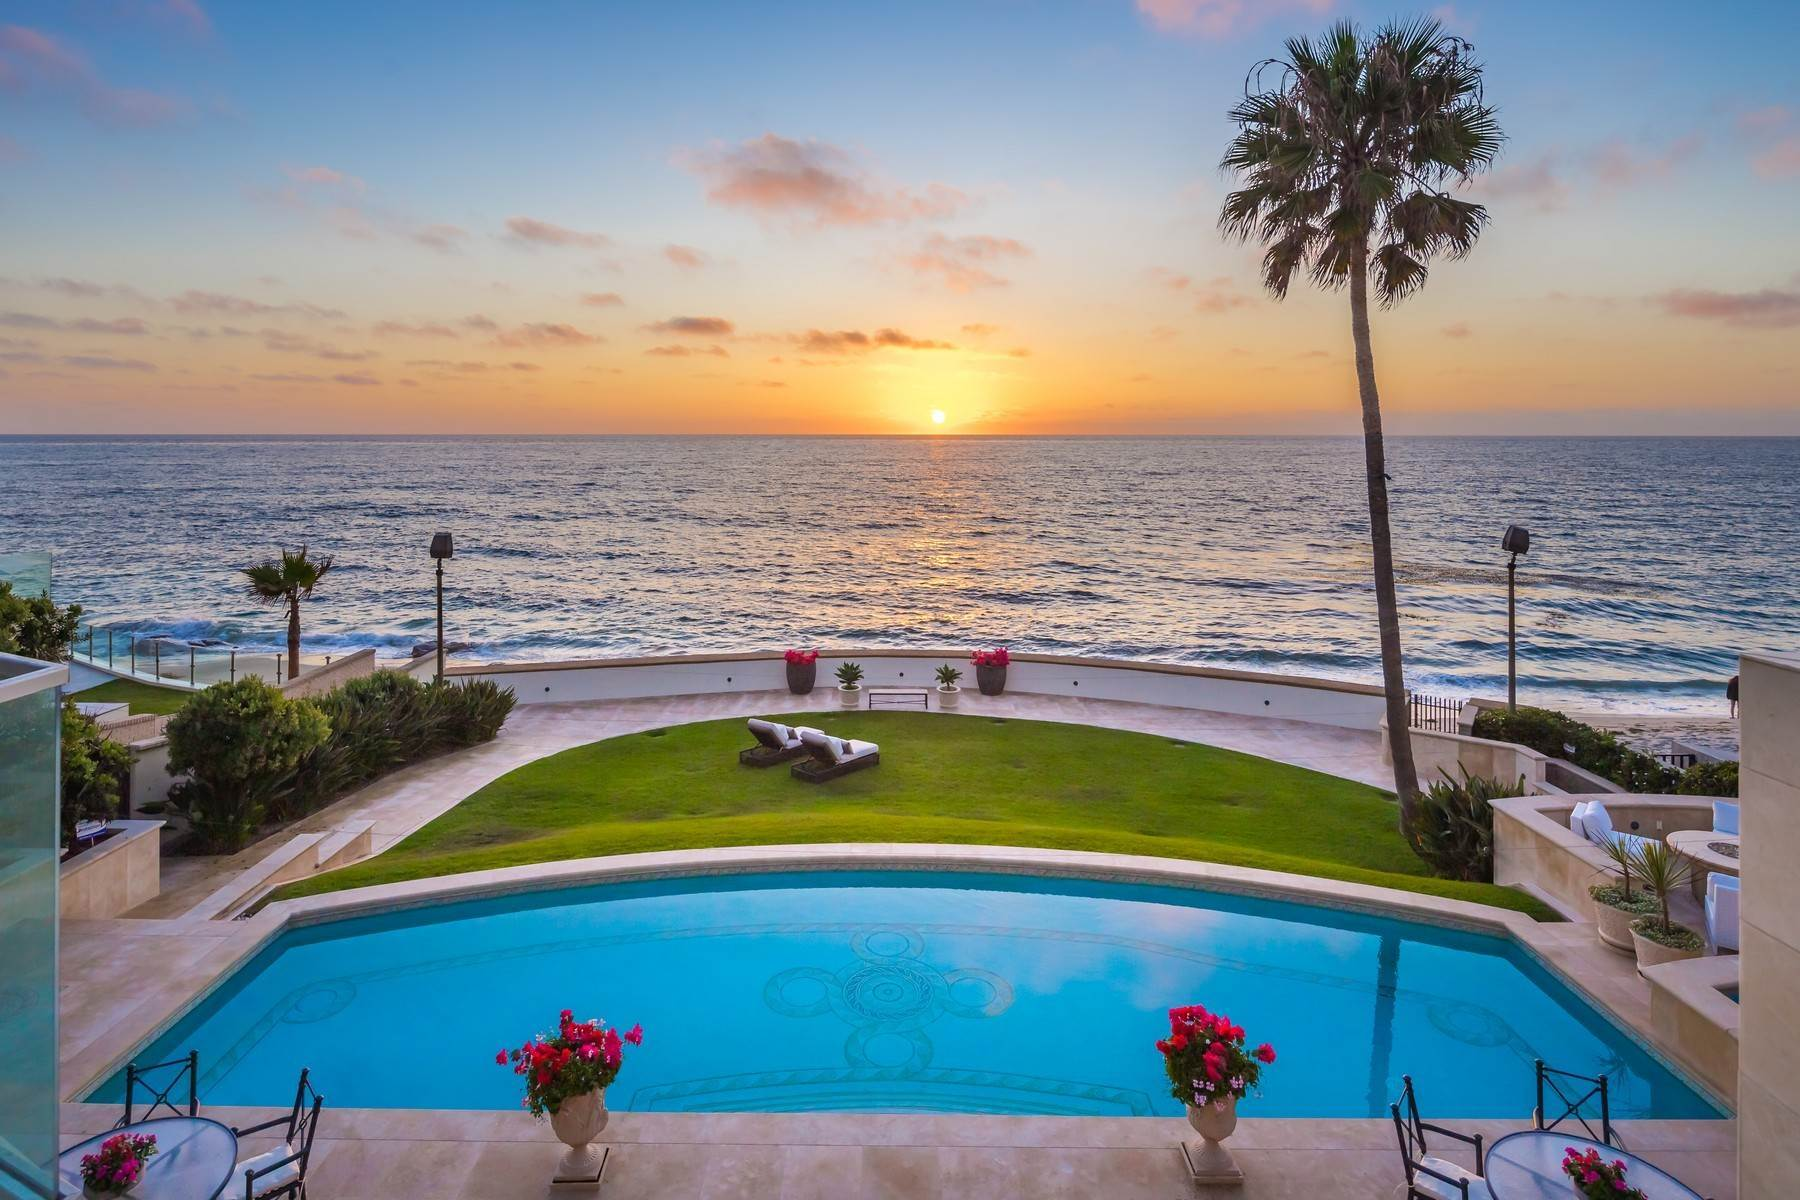 Single Family Homes for Sale at La Jolla, California 92037 United States